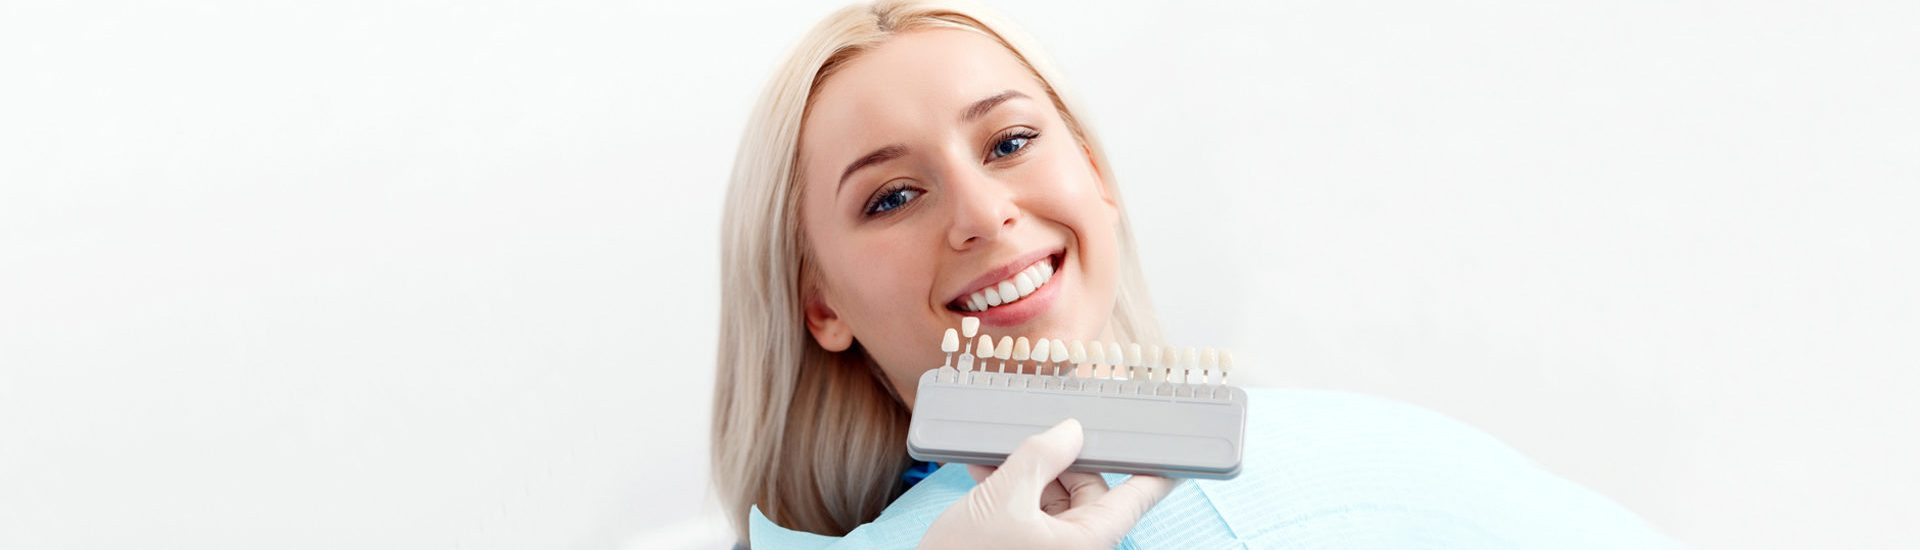 Are Porcelain Veneers The Right Option For You?